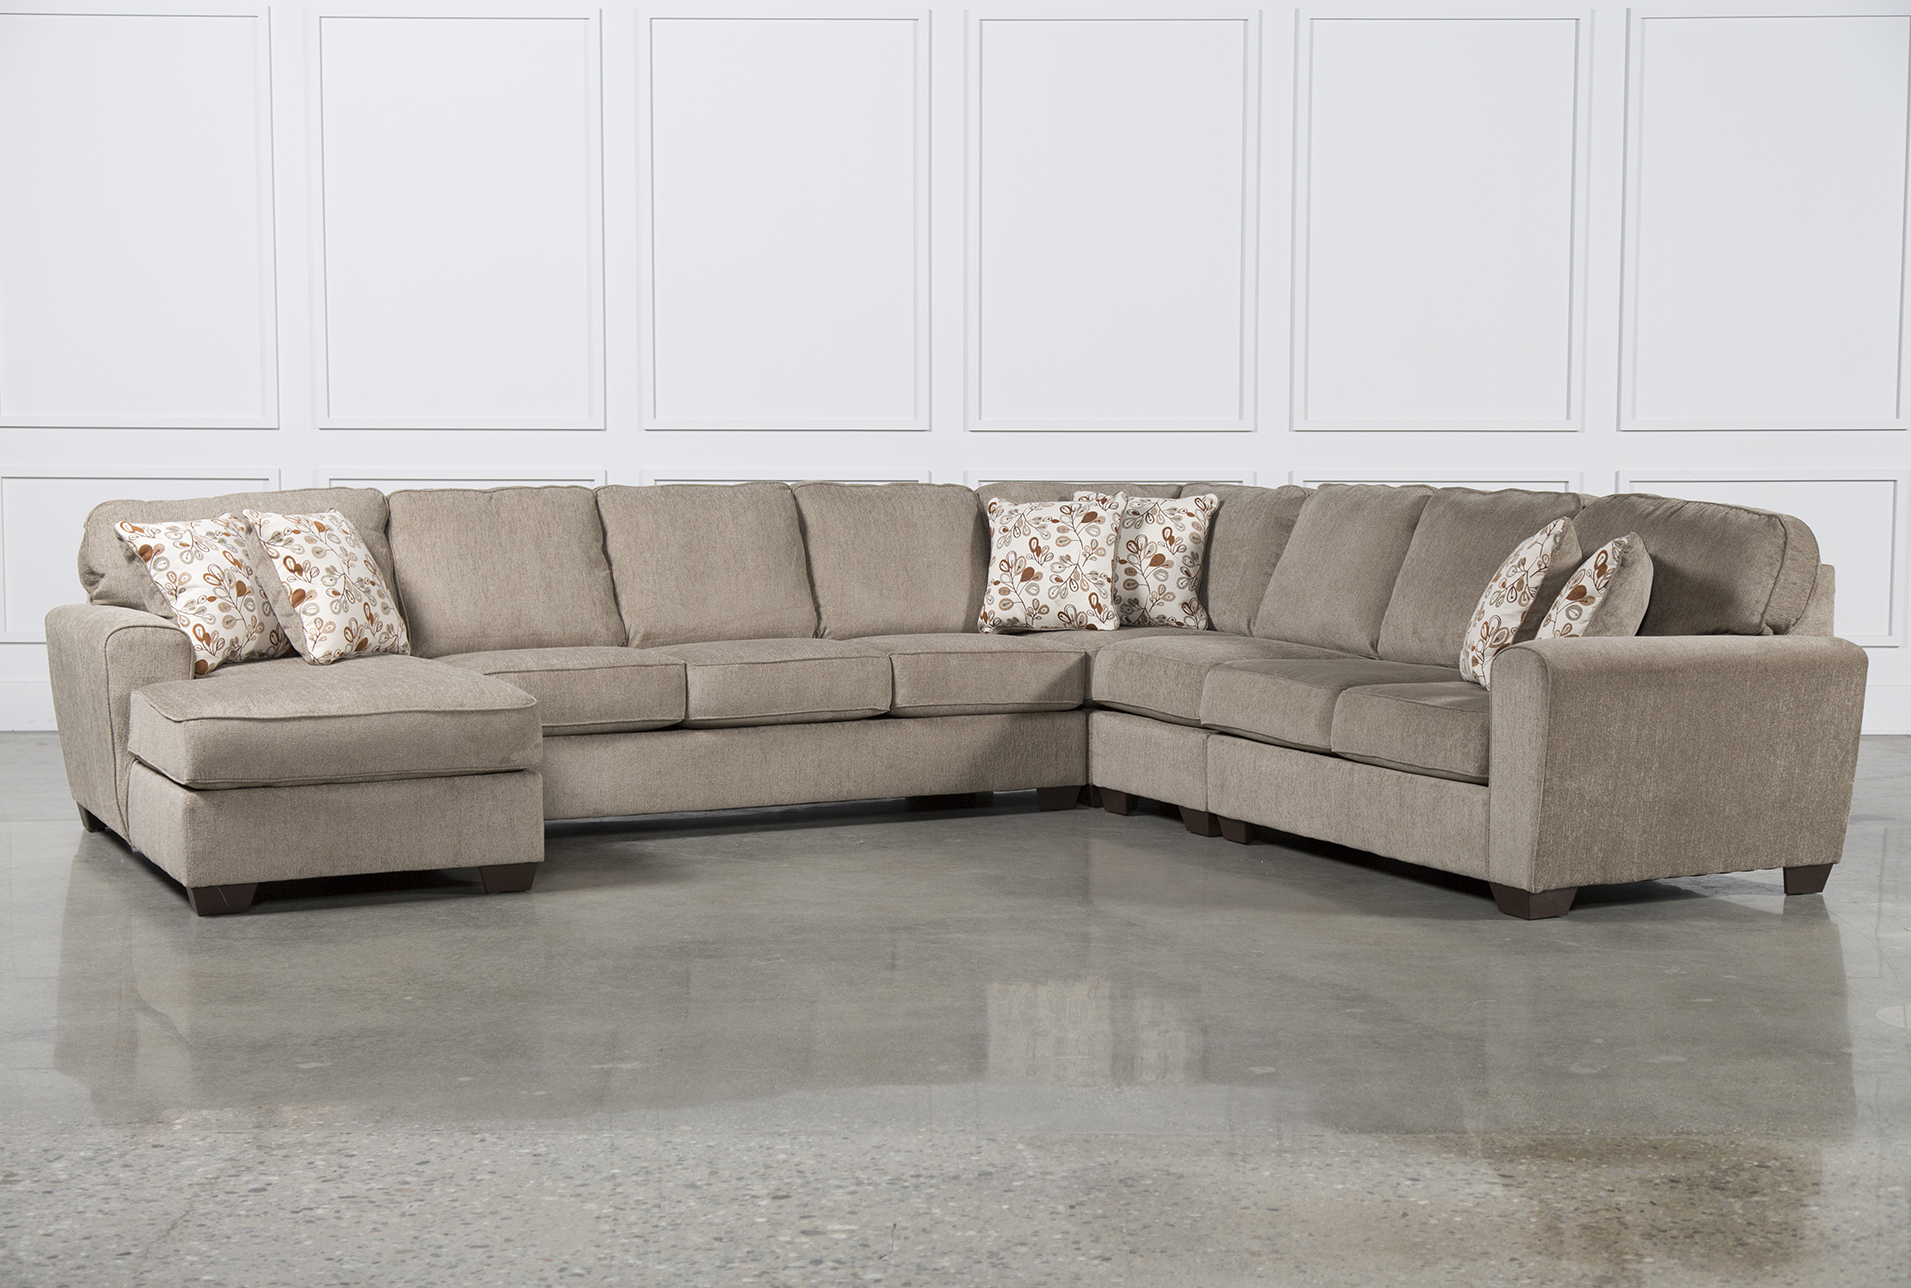 Patola Park 5 Piece Sectional WLaf Chaise Living Spaces